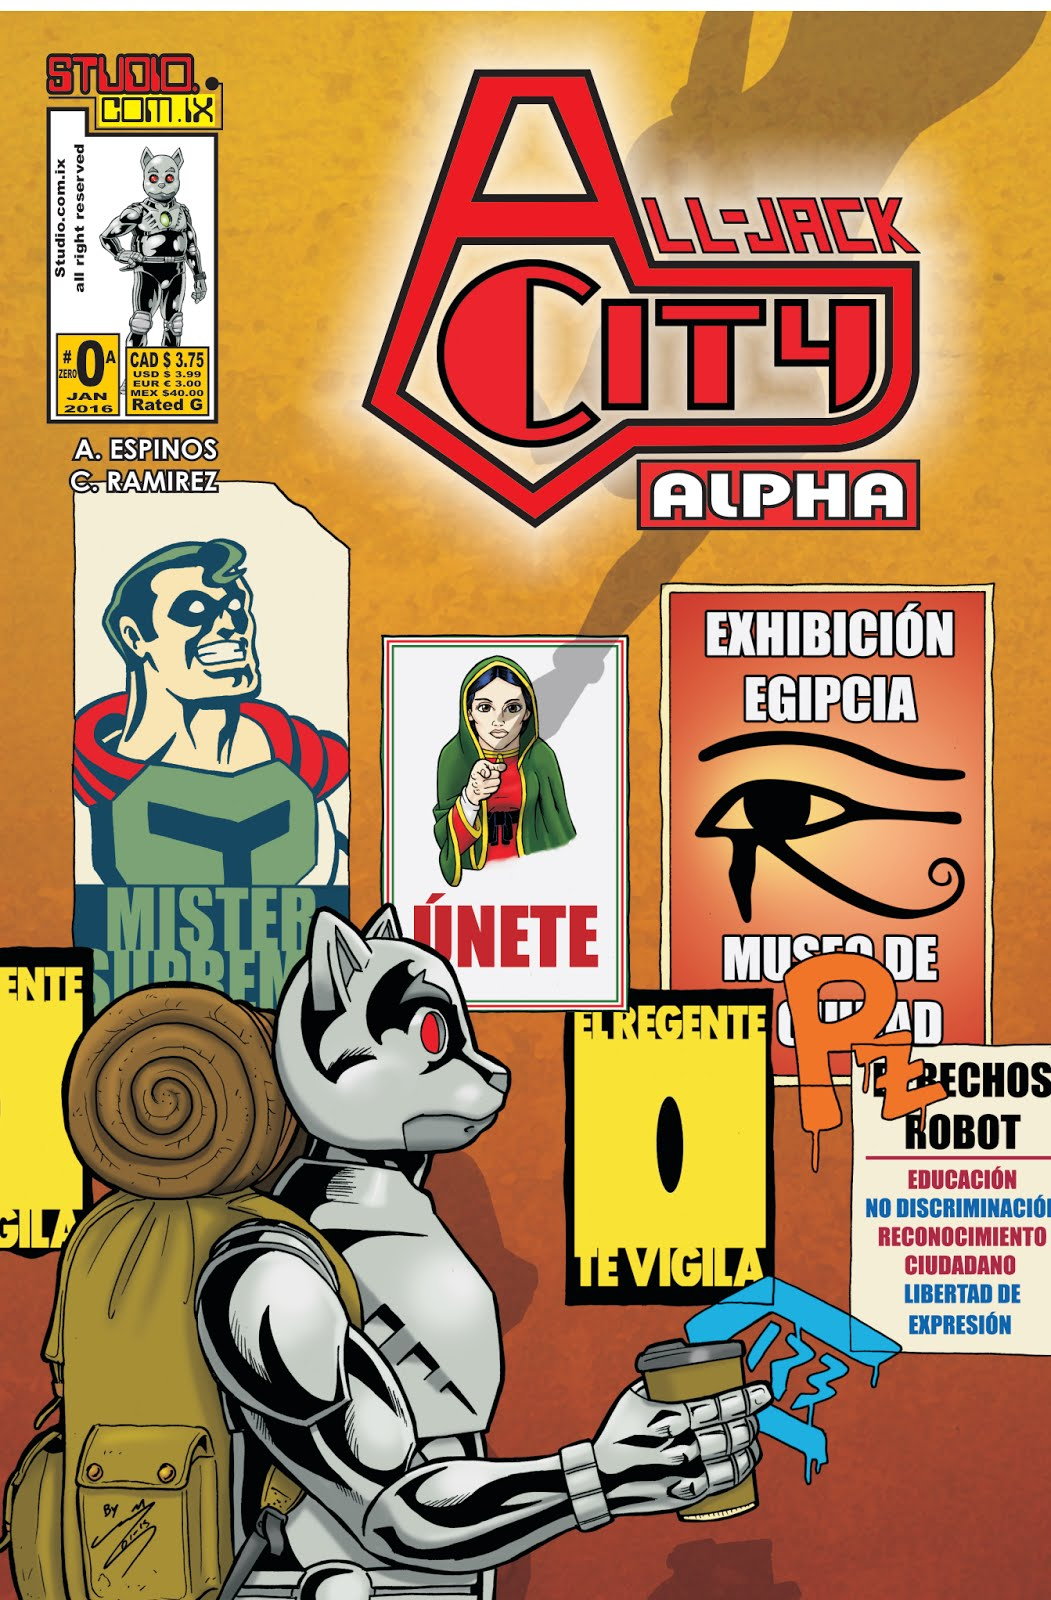 All Jack City Alpha #0